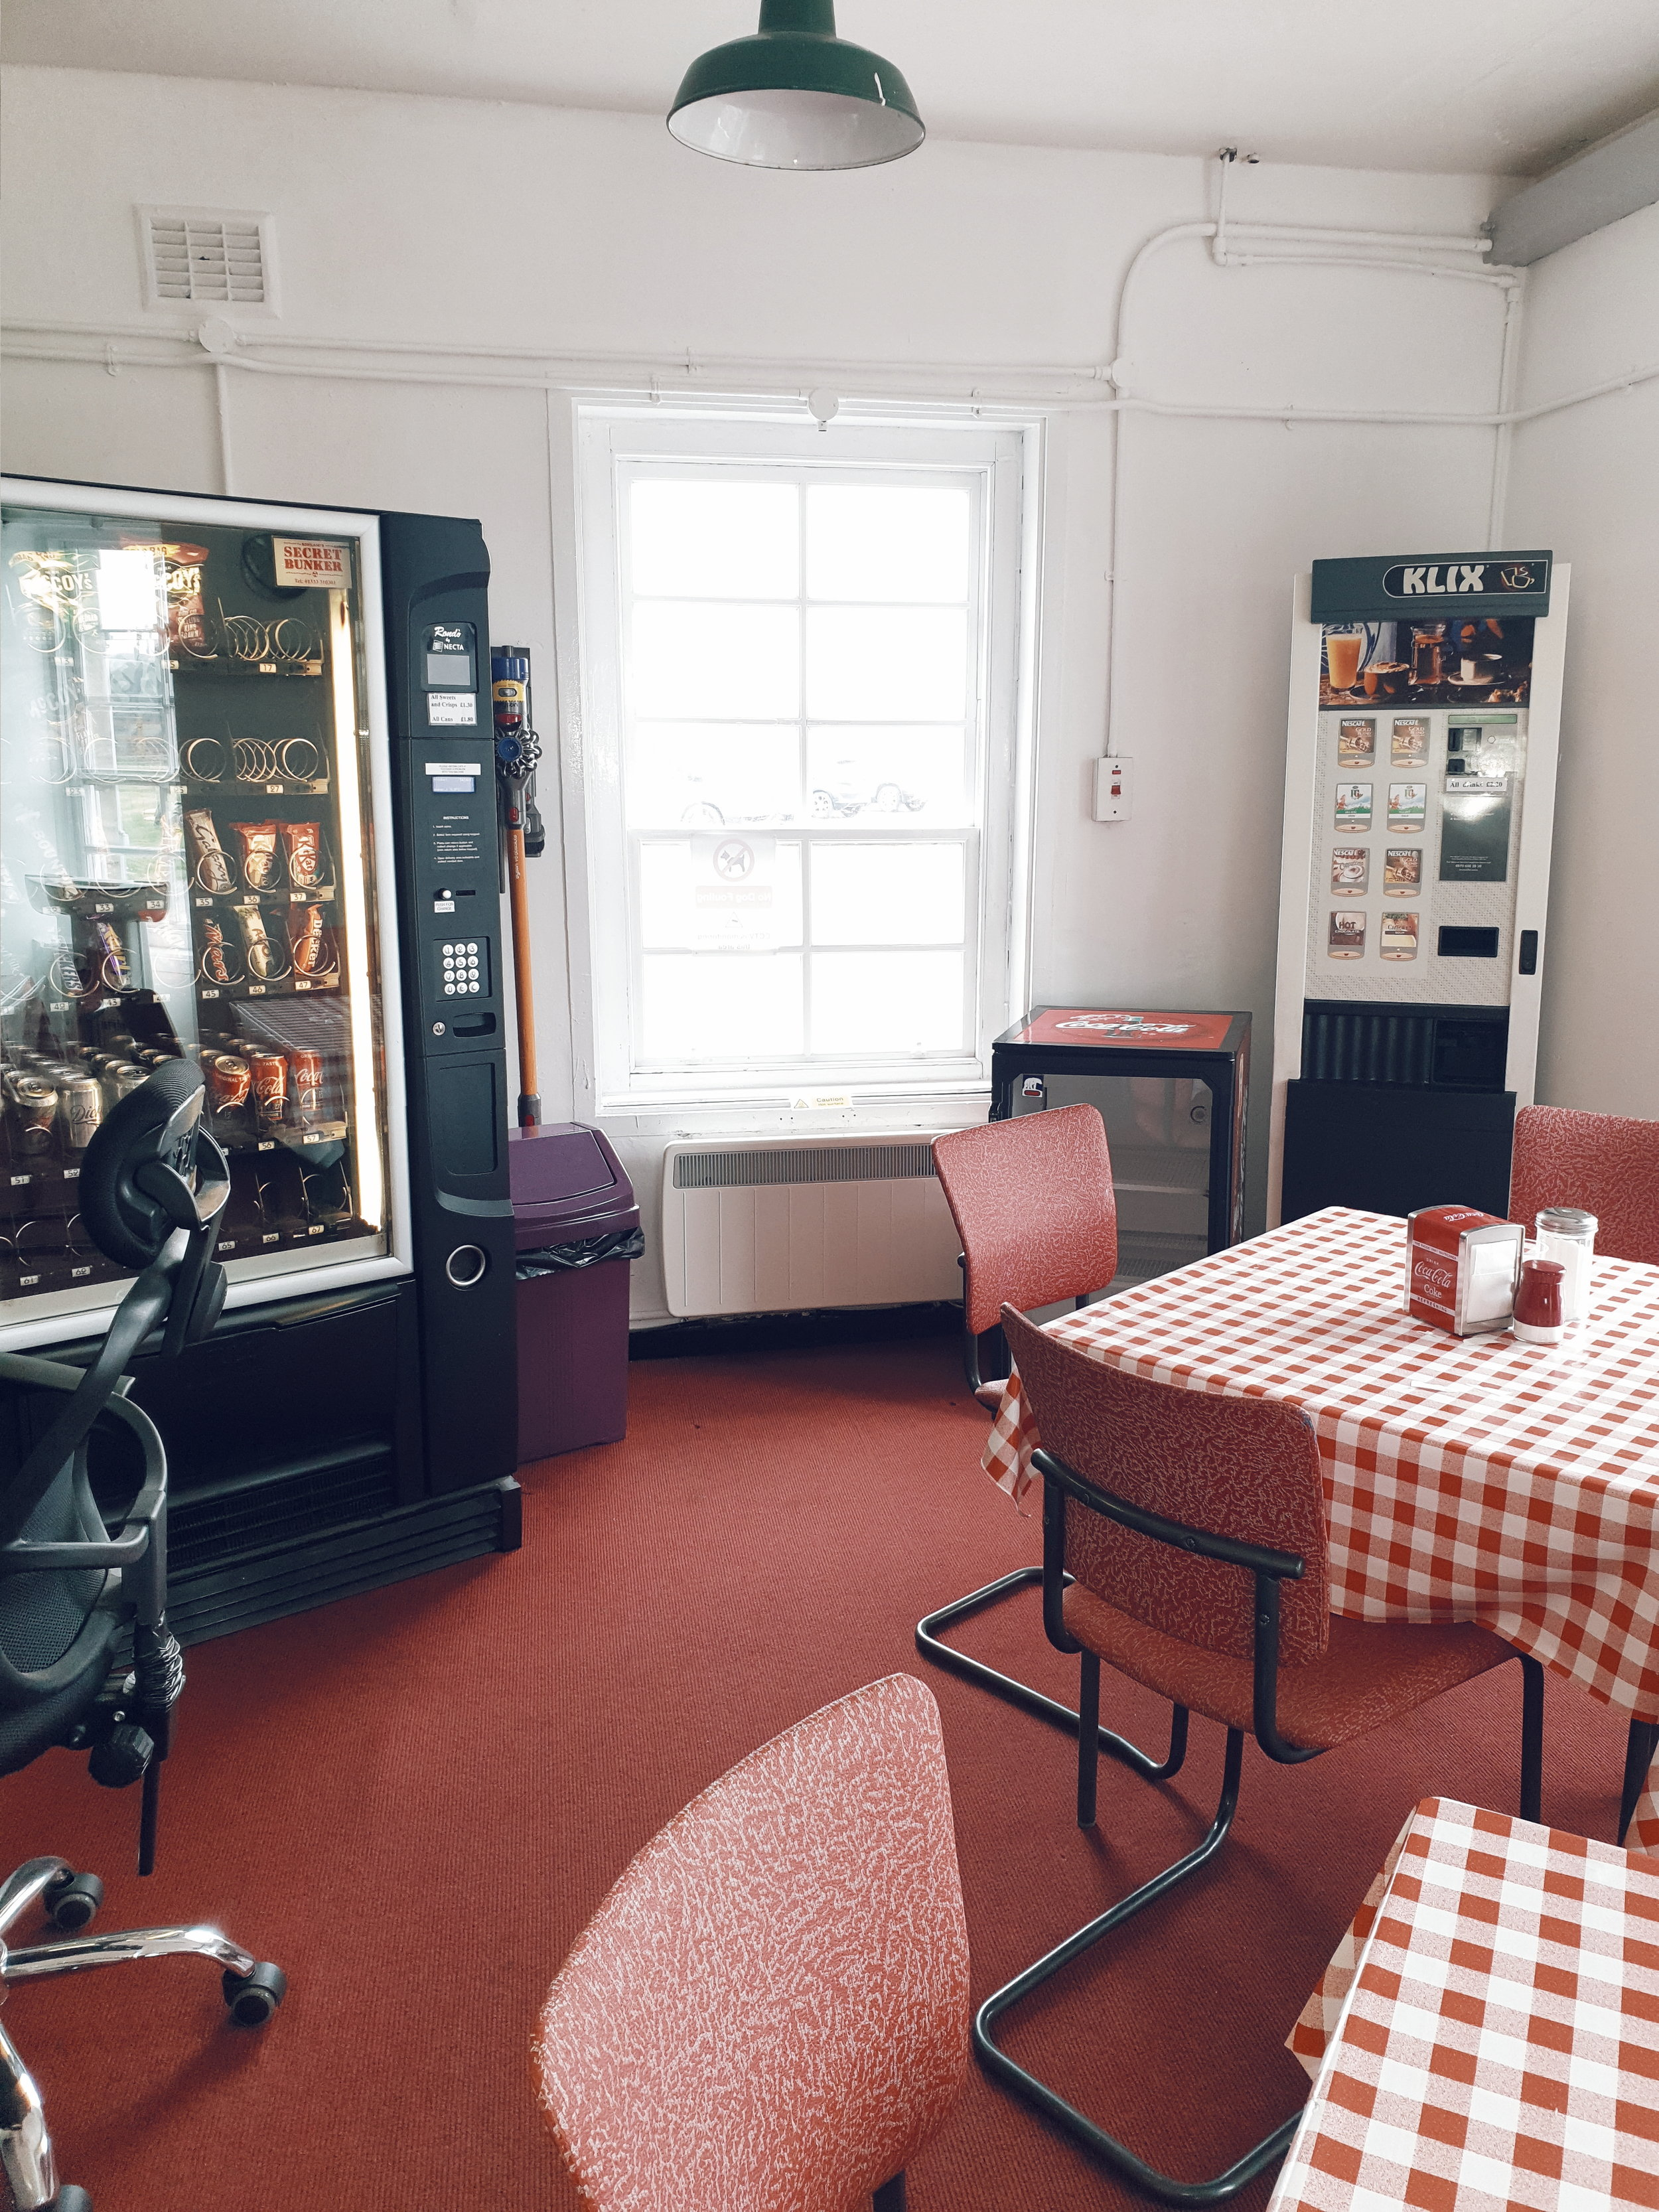 The err retro cafe which looks like it is still trapped in the Cold War era